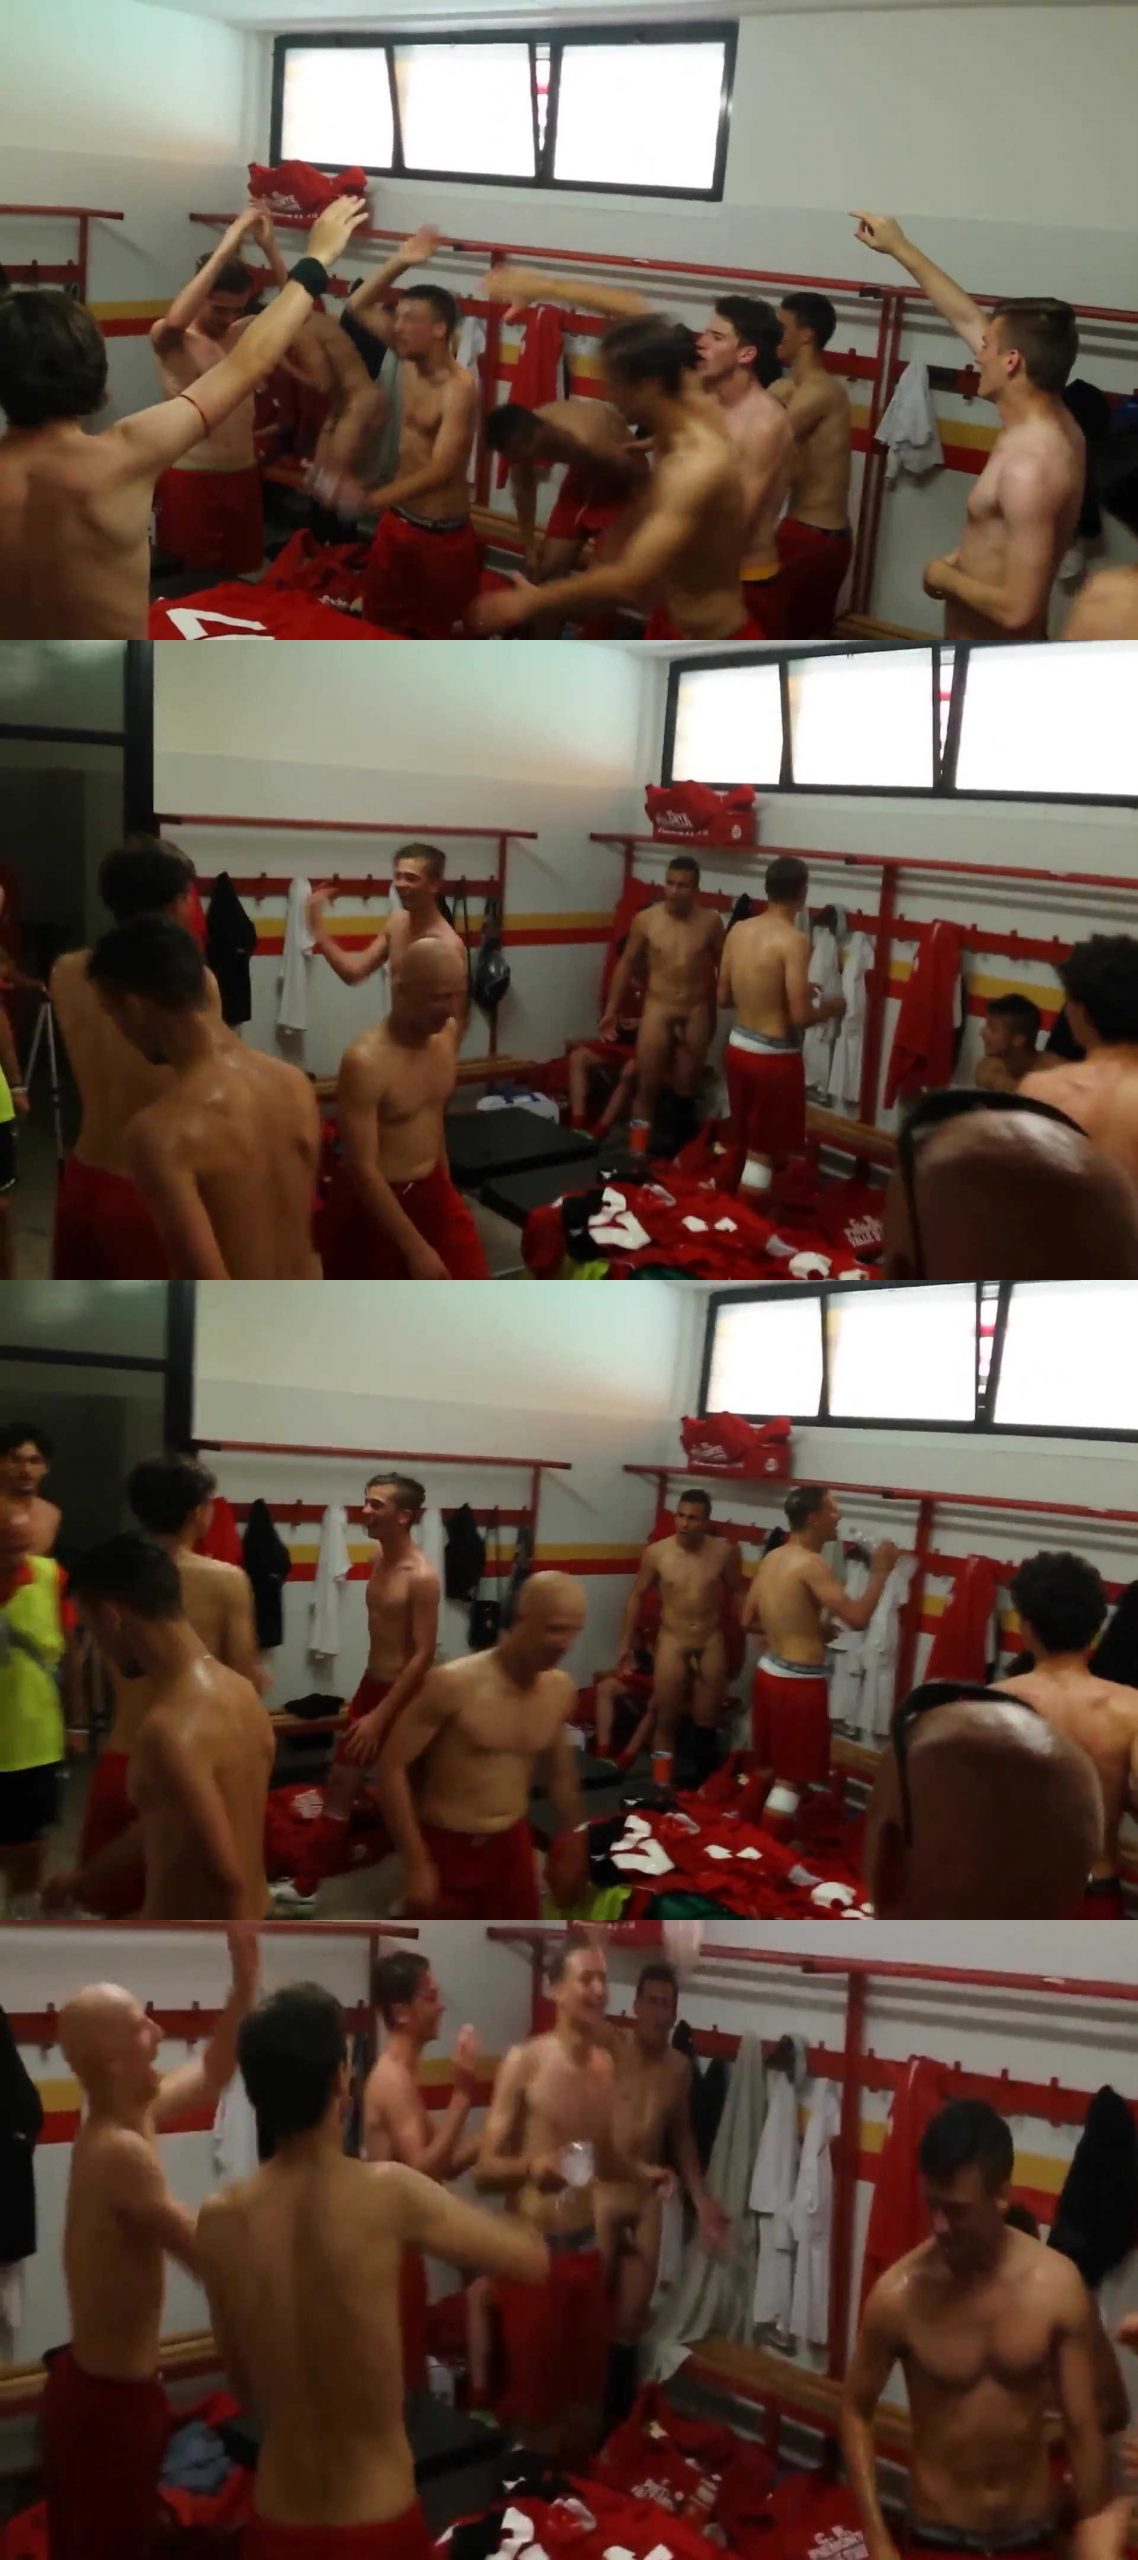 naked player in a locker room